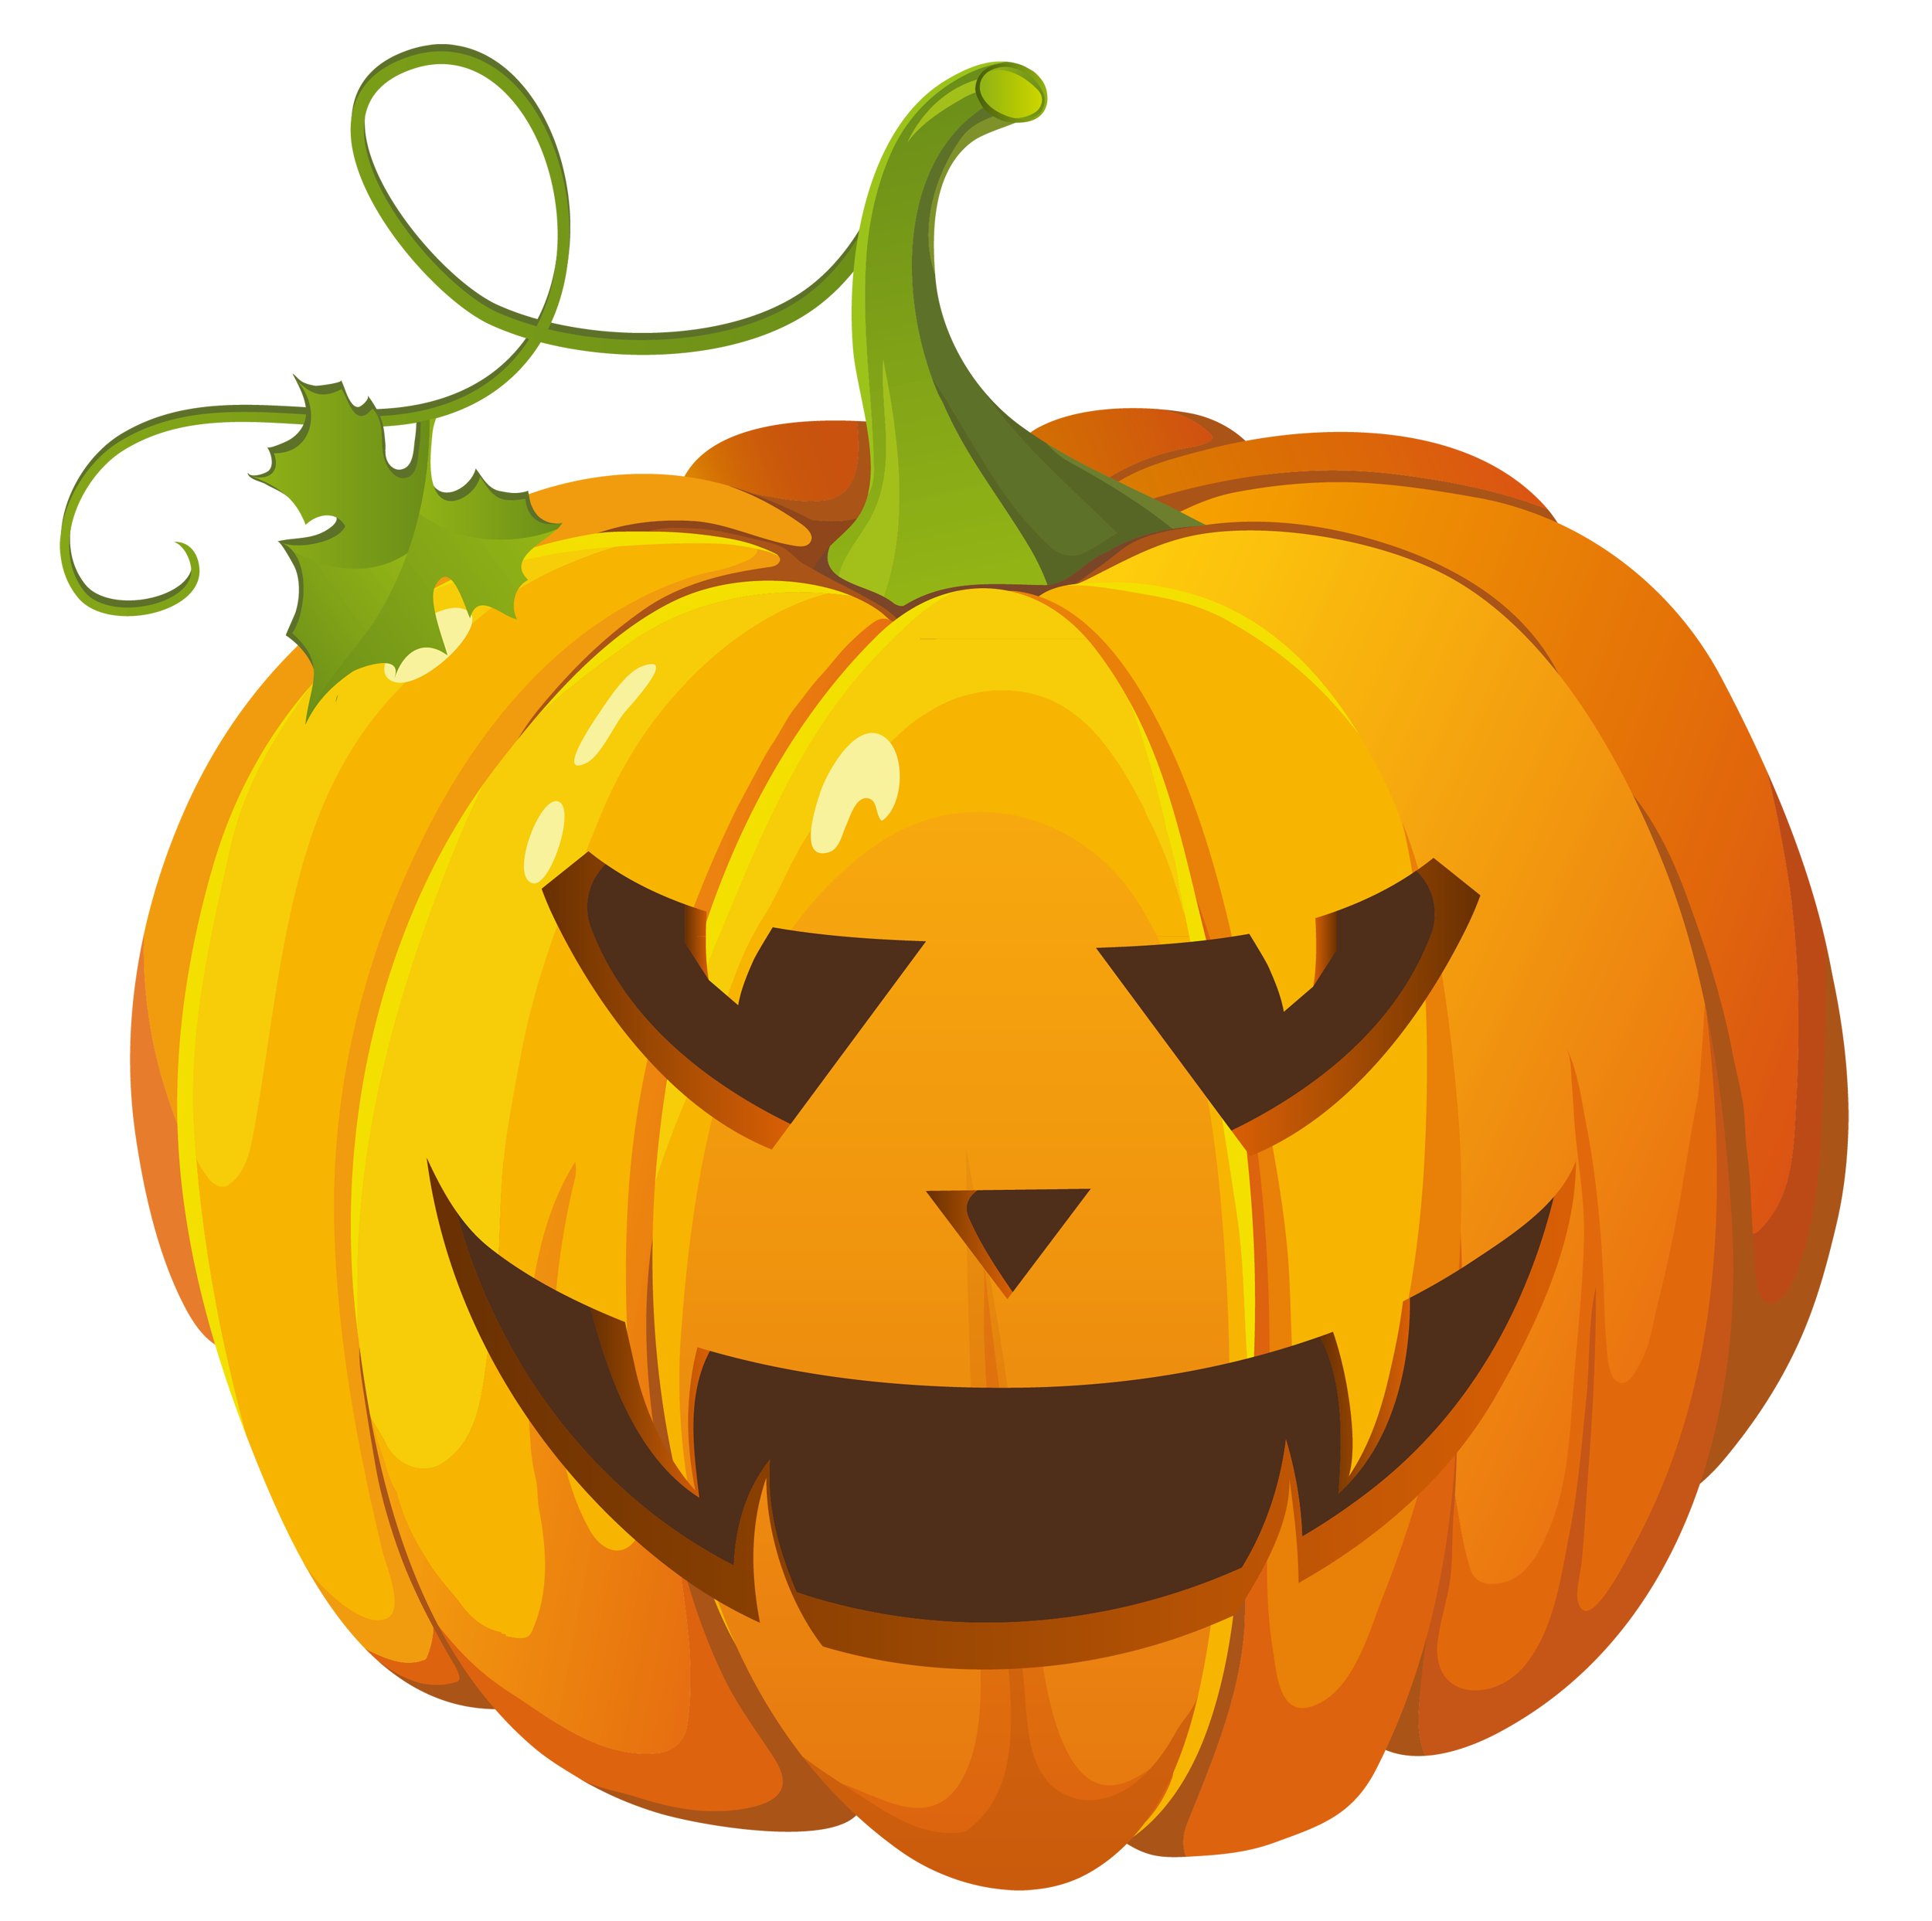 Pumpkin candy clipart png image freeuse download Free Halloween Clipart at GetDrawings.com | Free for personal use ... image freeuse download